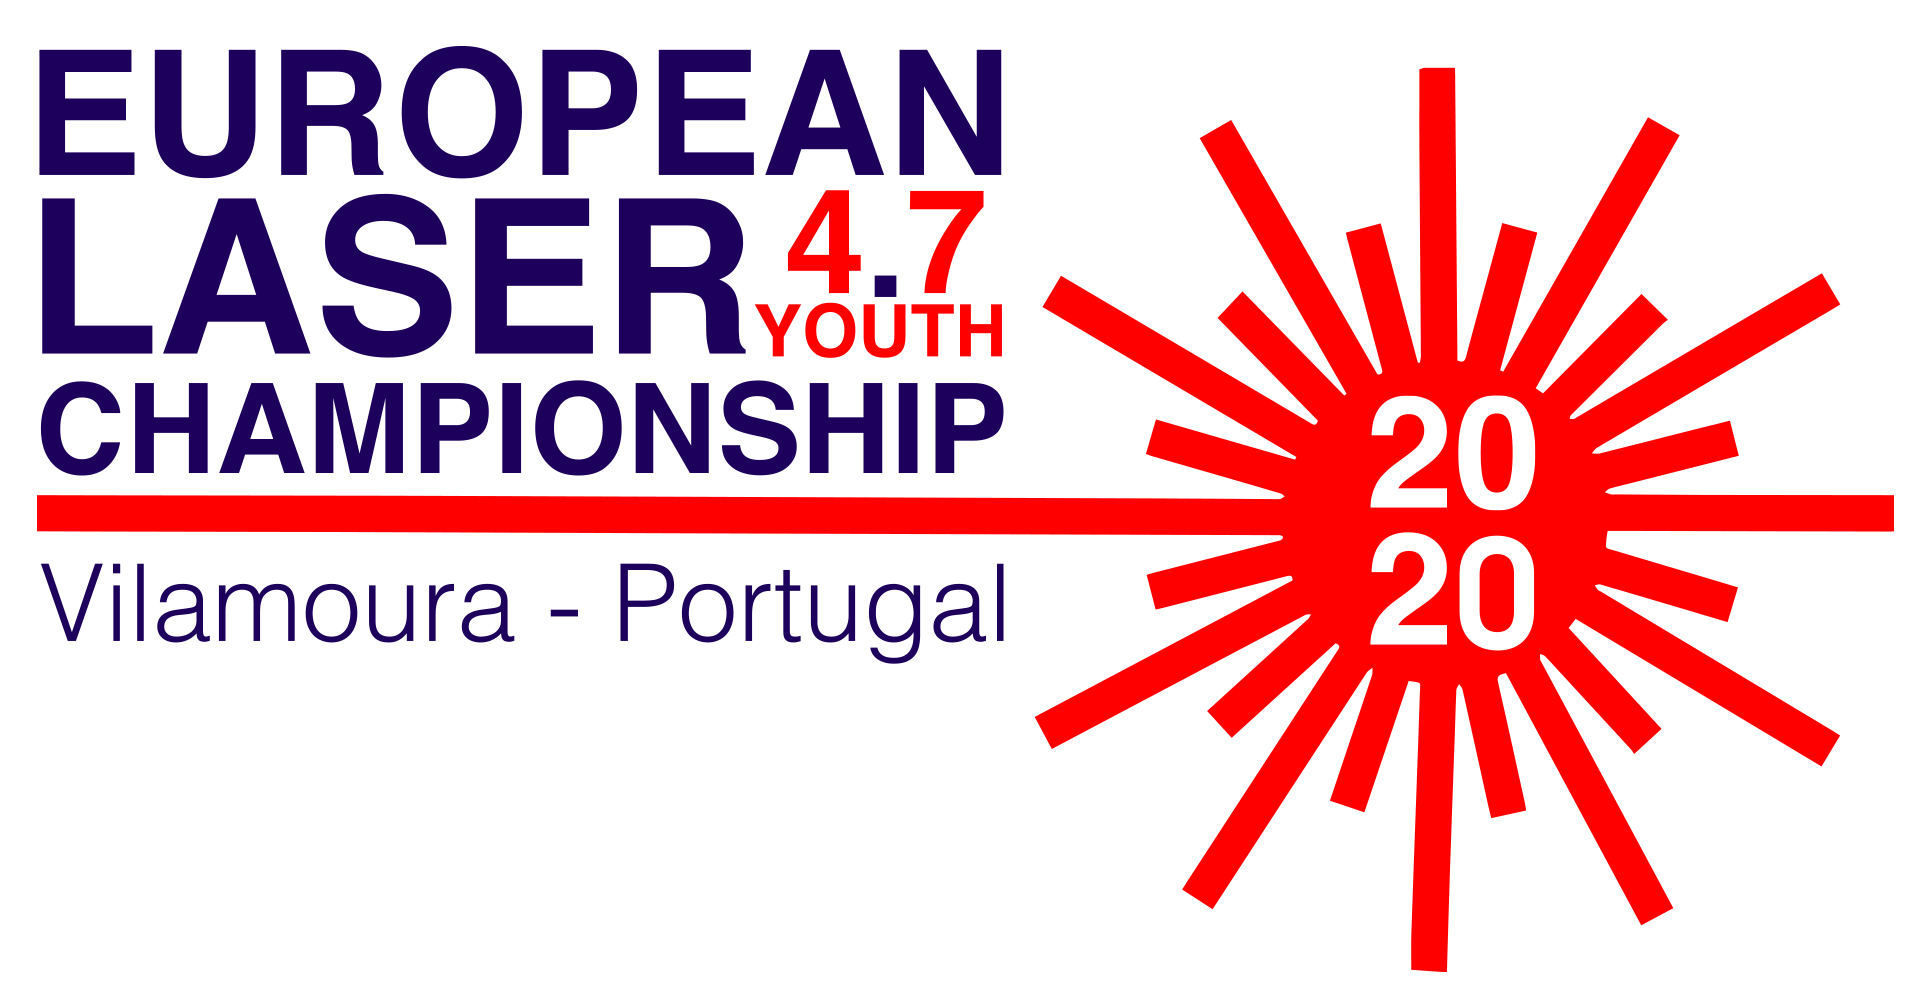 2020 laser 4.7 youth europeans logo